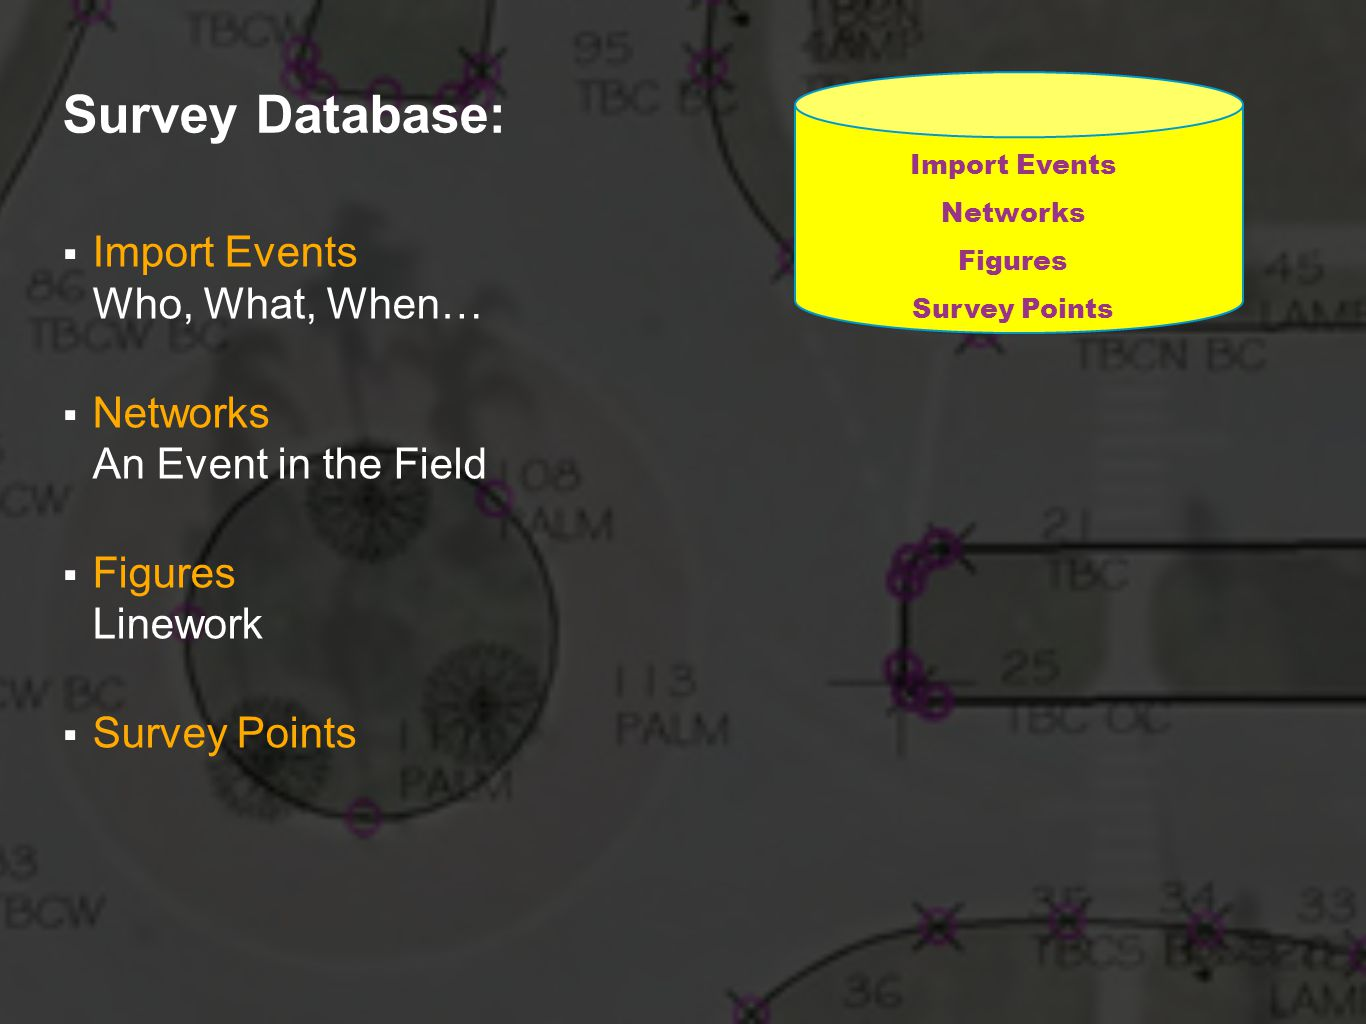 Survey Database: Import Events Who, What, When… Networks An Event in the Field Figures Linework Survey Points Import Events Networks Figures Survey Points